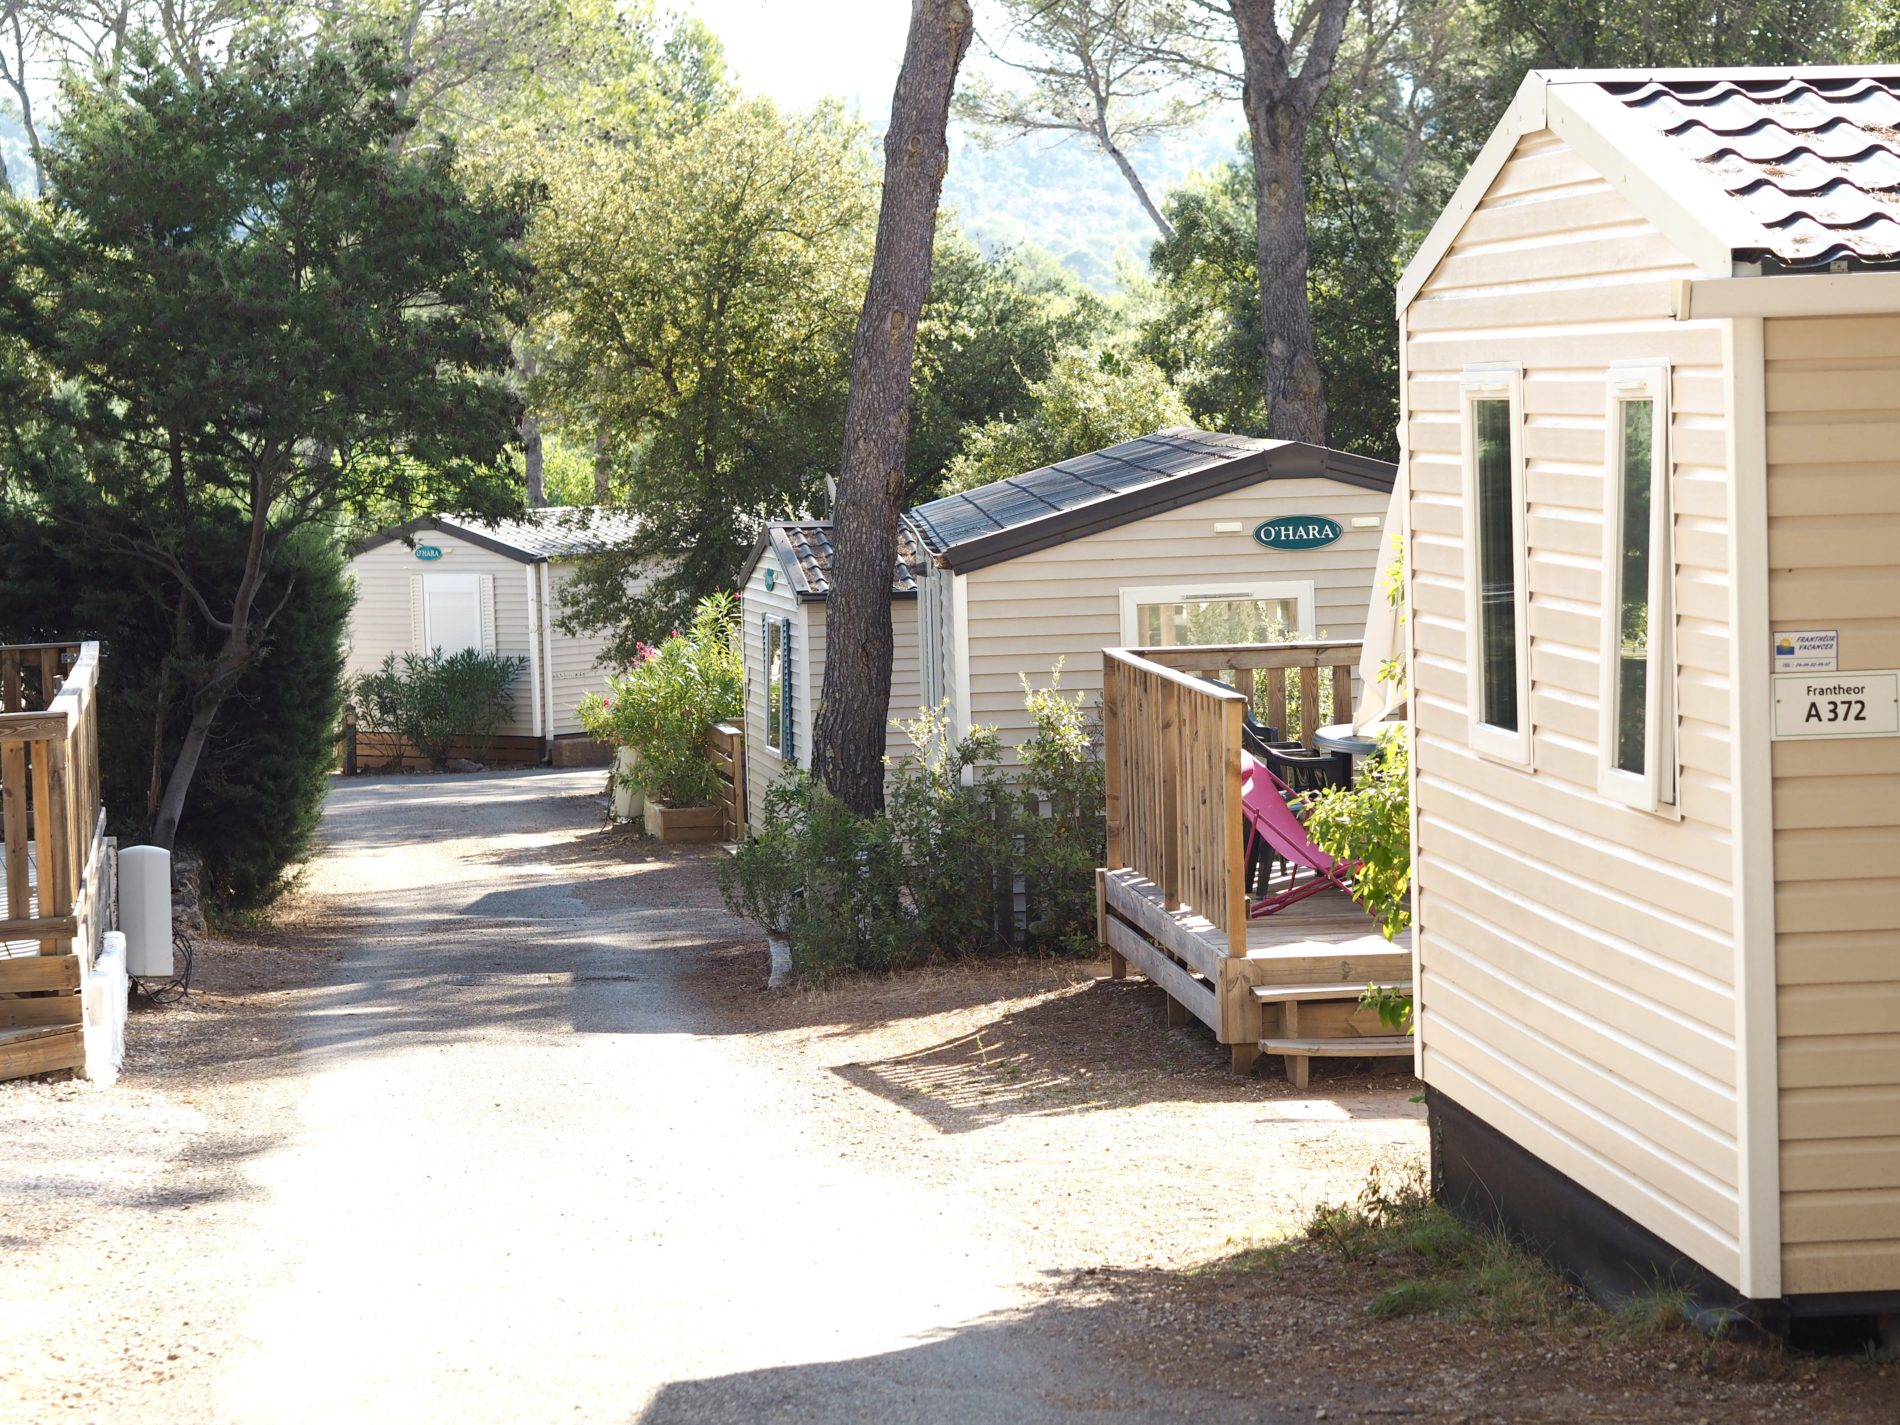 Eurocamp accommodation at Holiday Green in Frejus